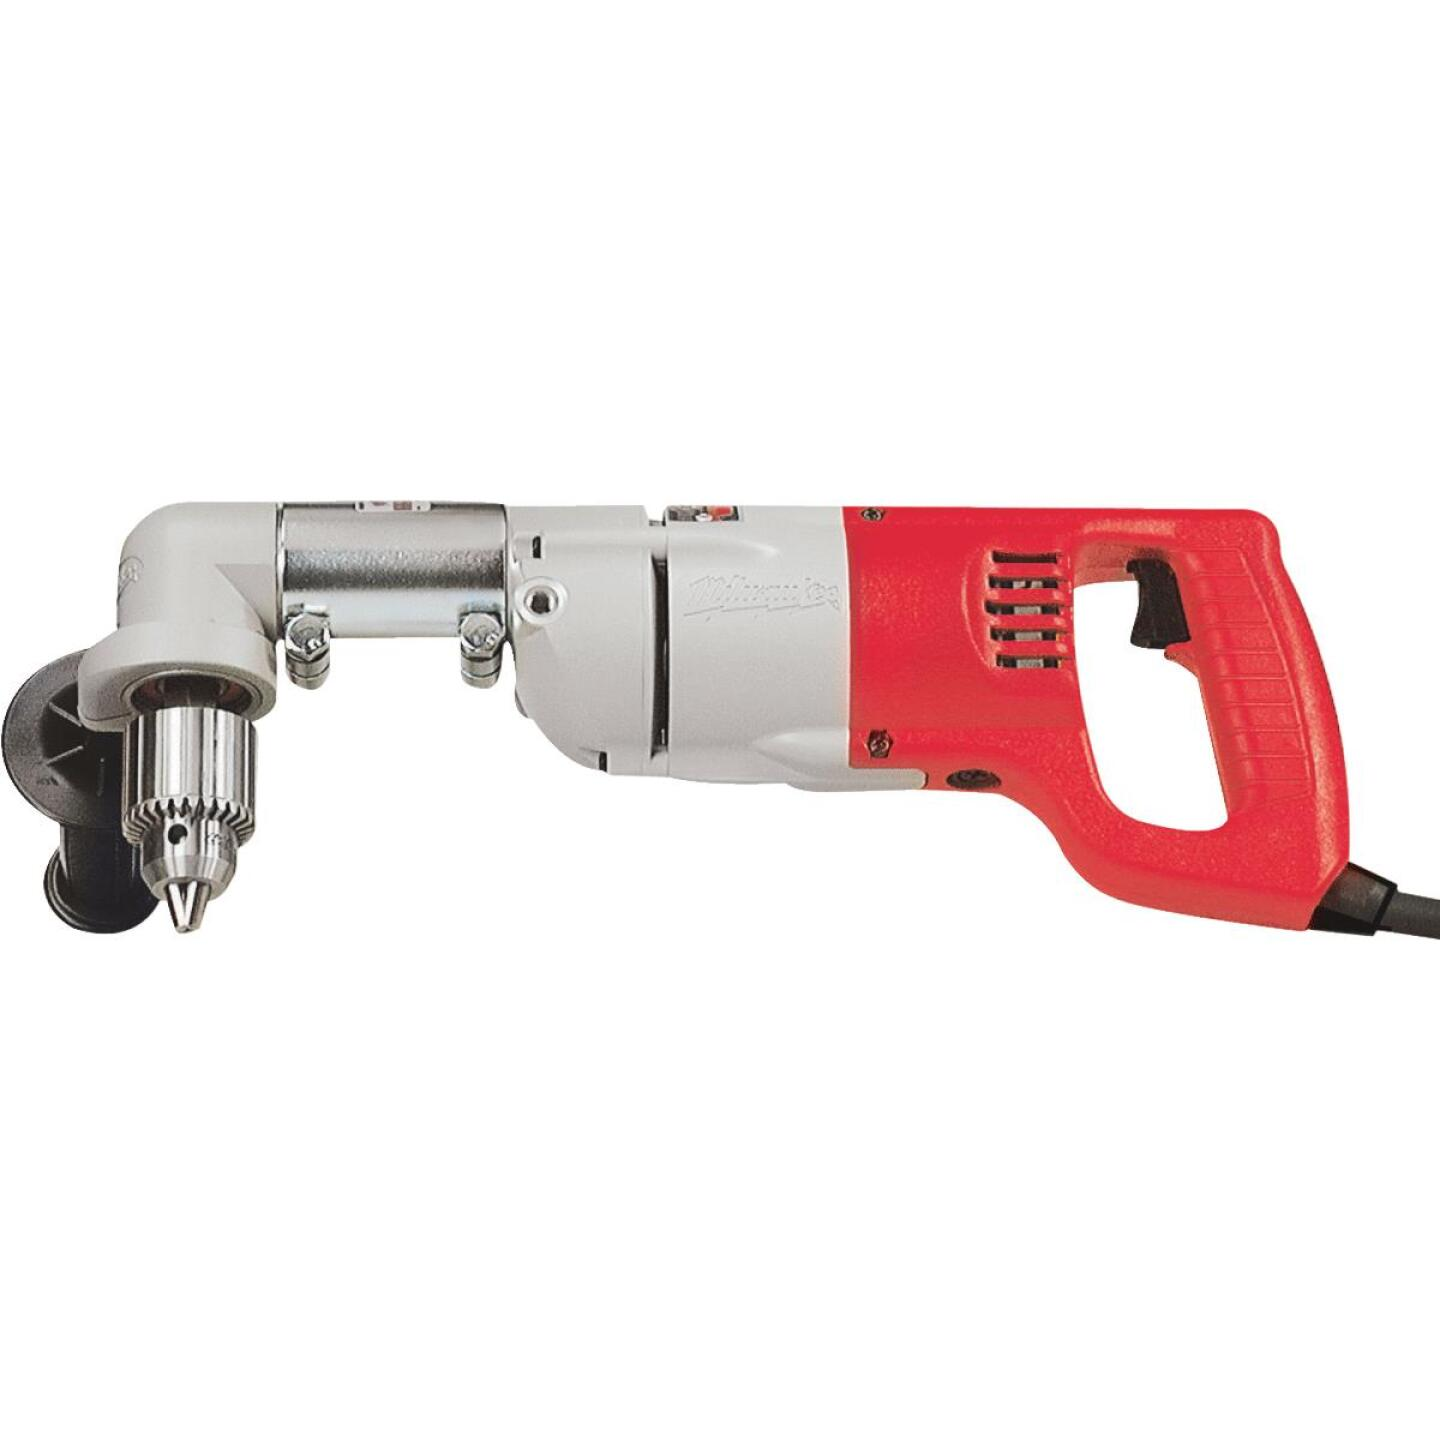 Milwaukee 1/2 In. 7-Amp Keyed D-Handle Electric Angle Drill Kit Image 1